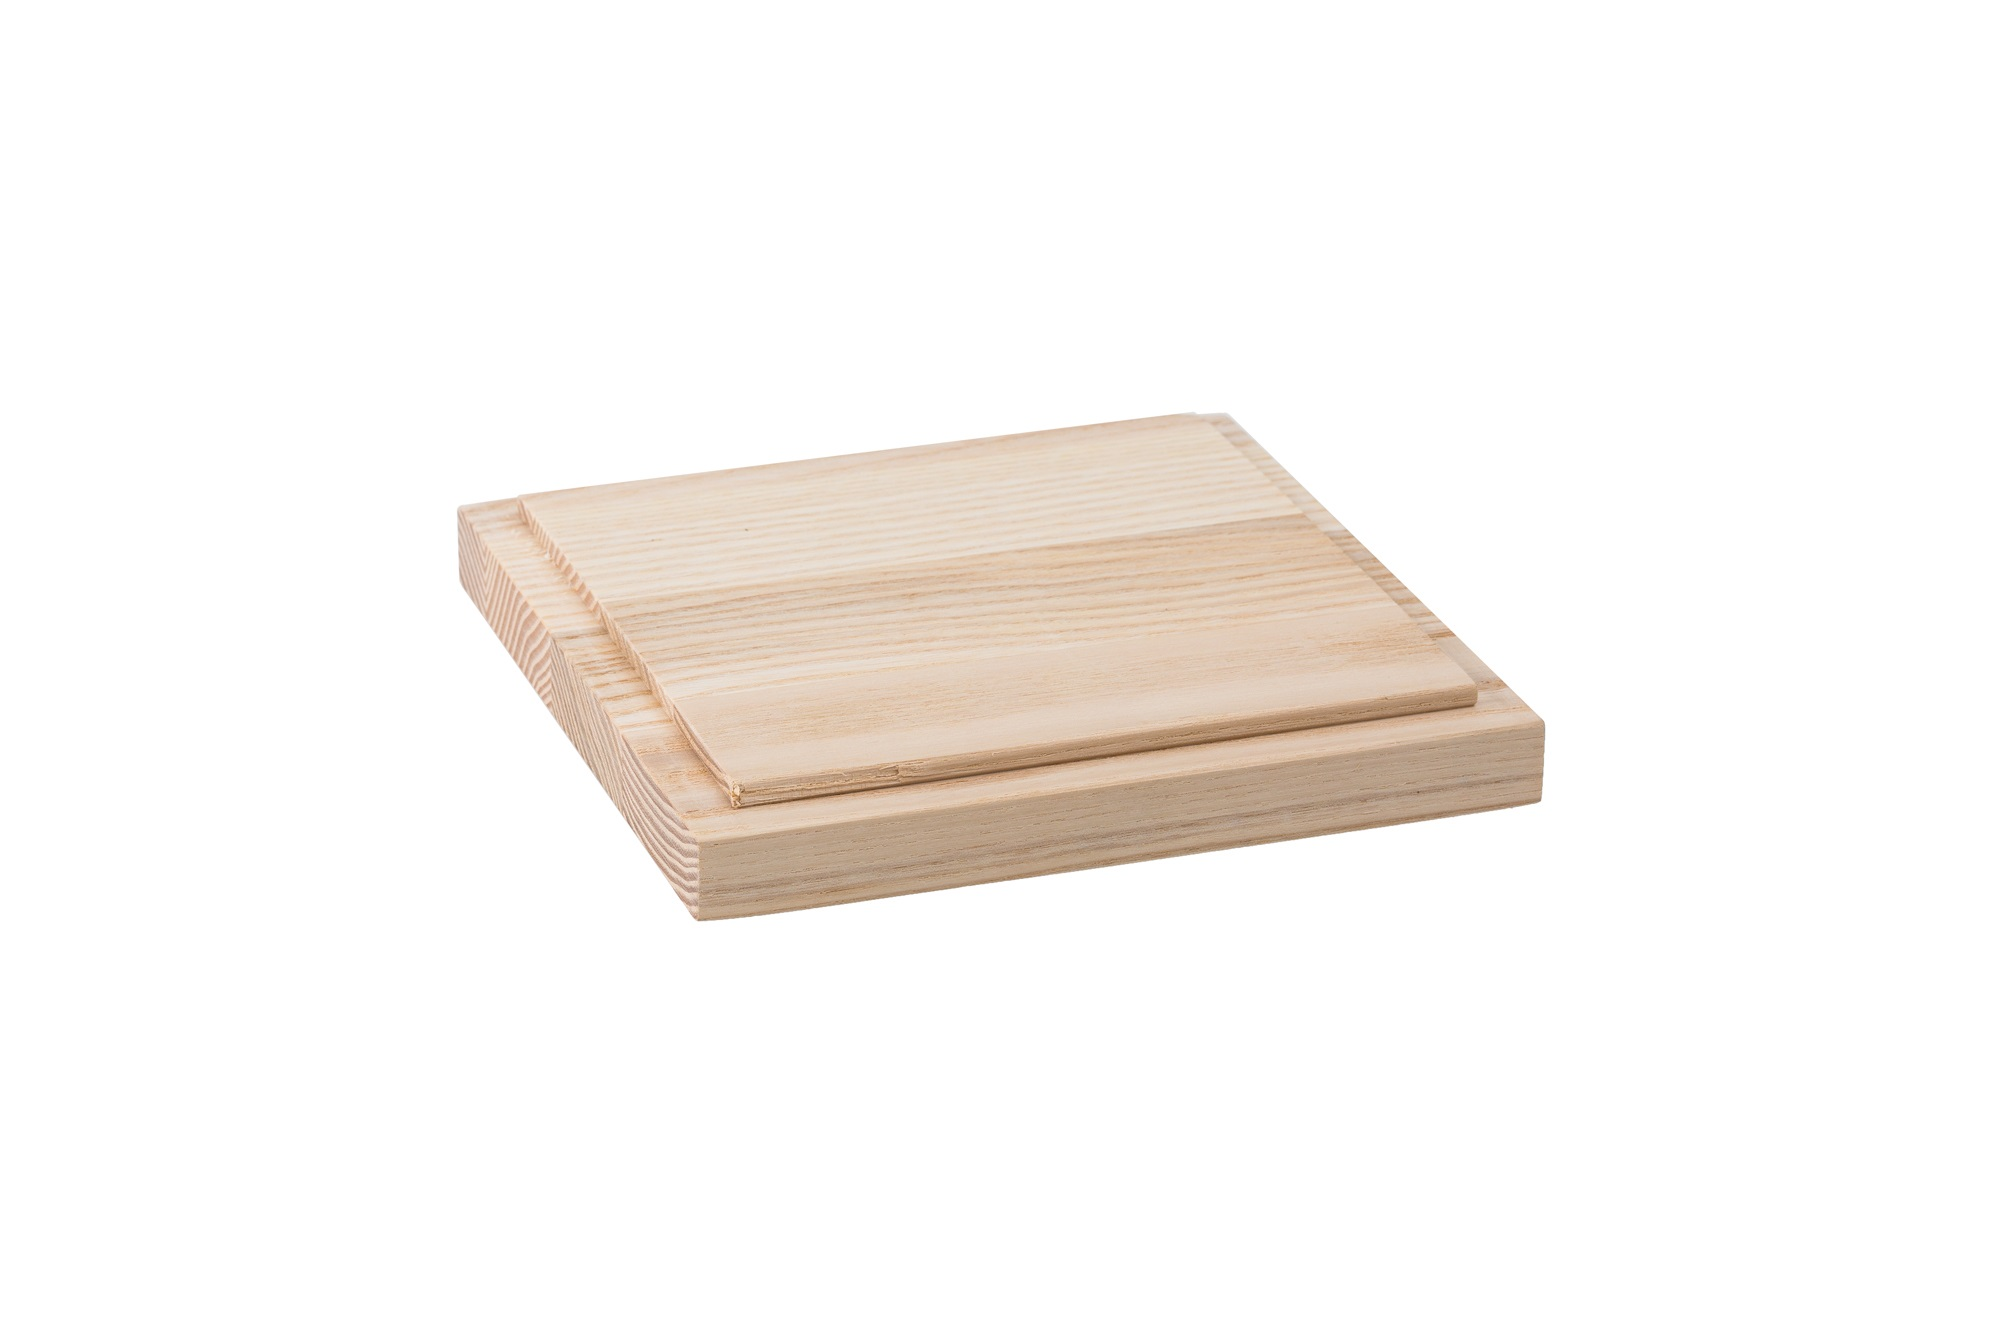 Wooden lid for L box